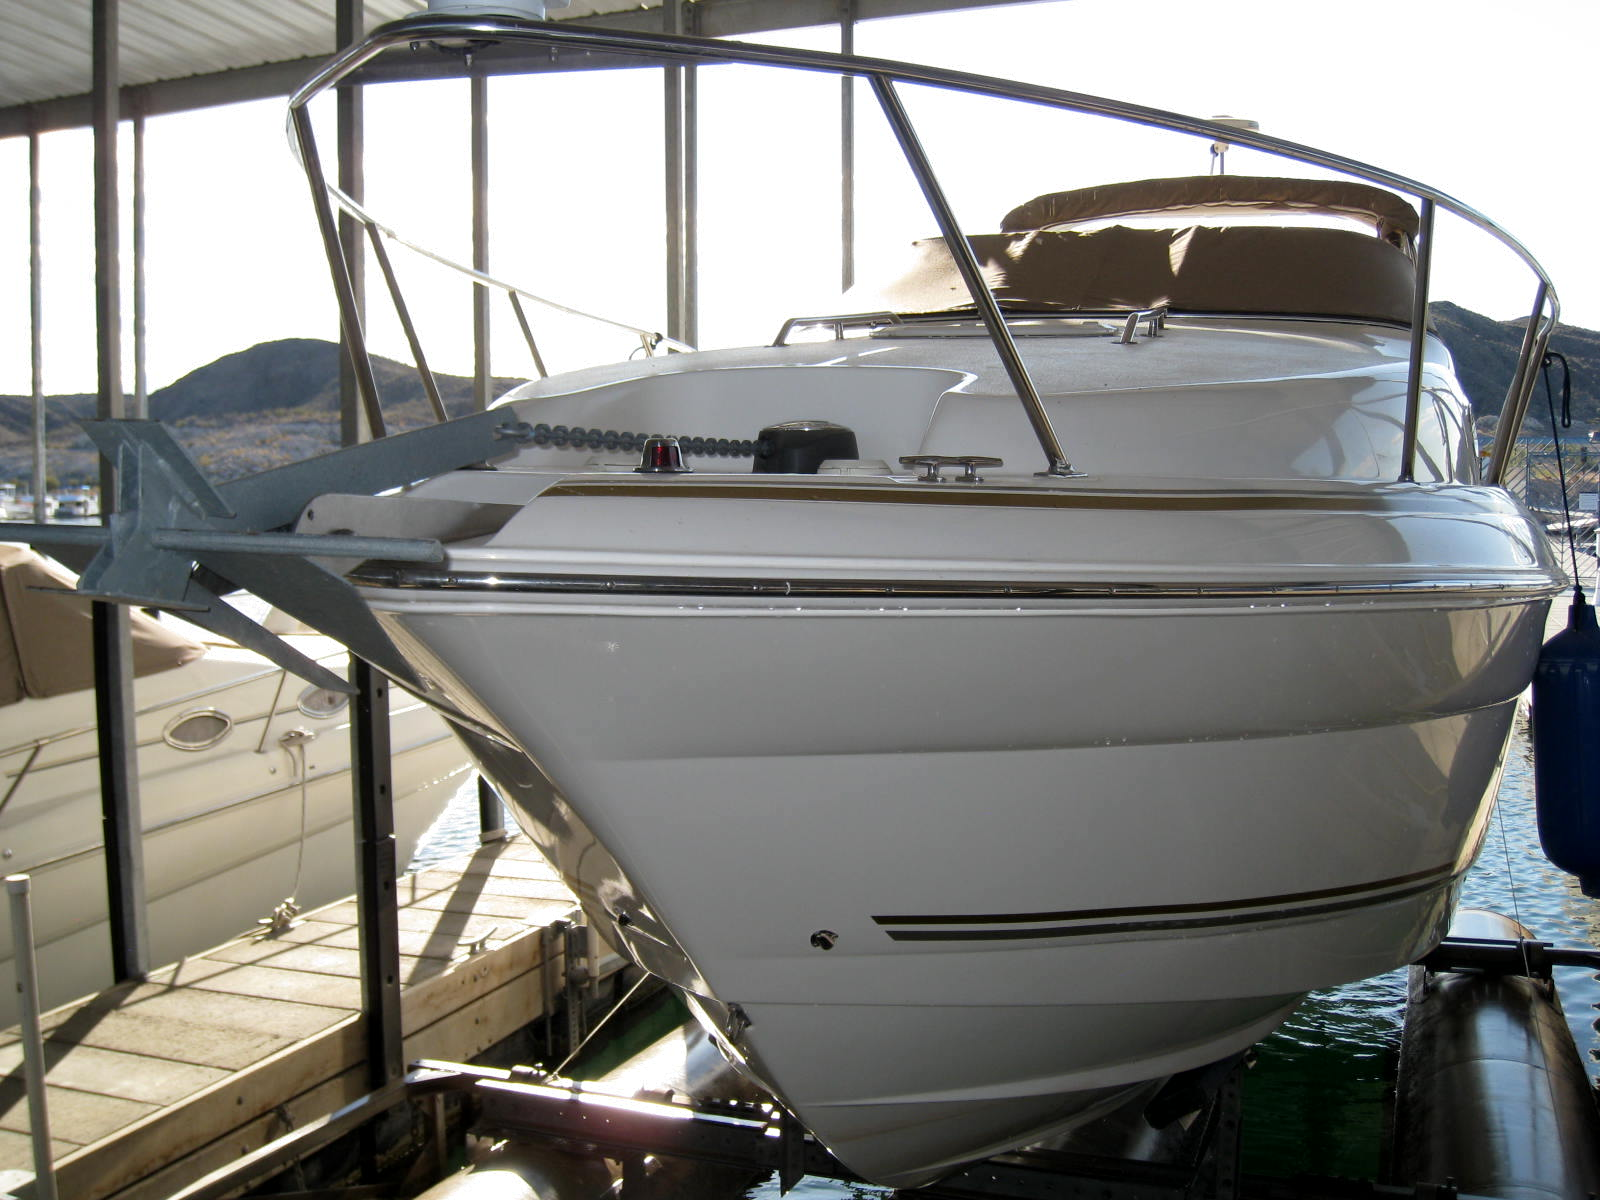 2004 Larson Cabrio 260! Perfect boat to get away from it all!